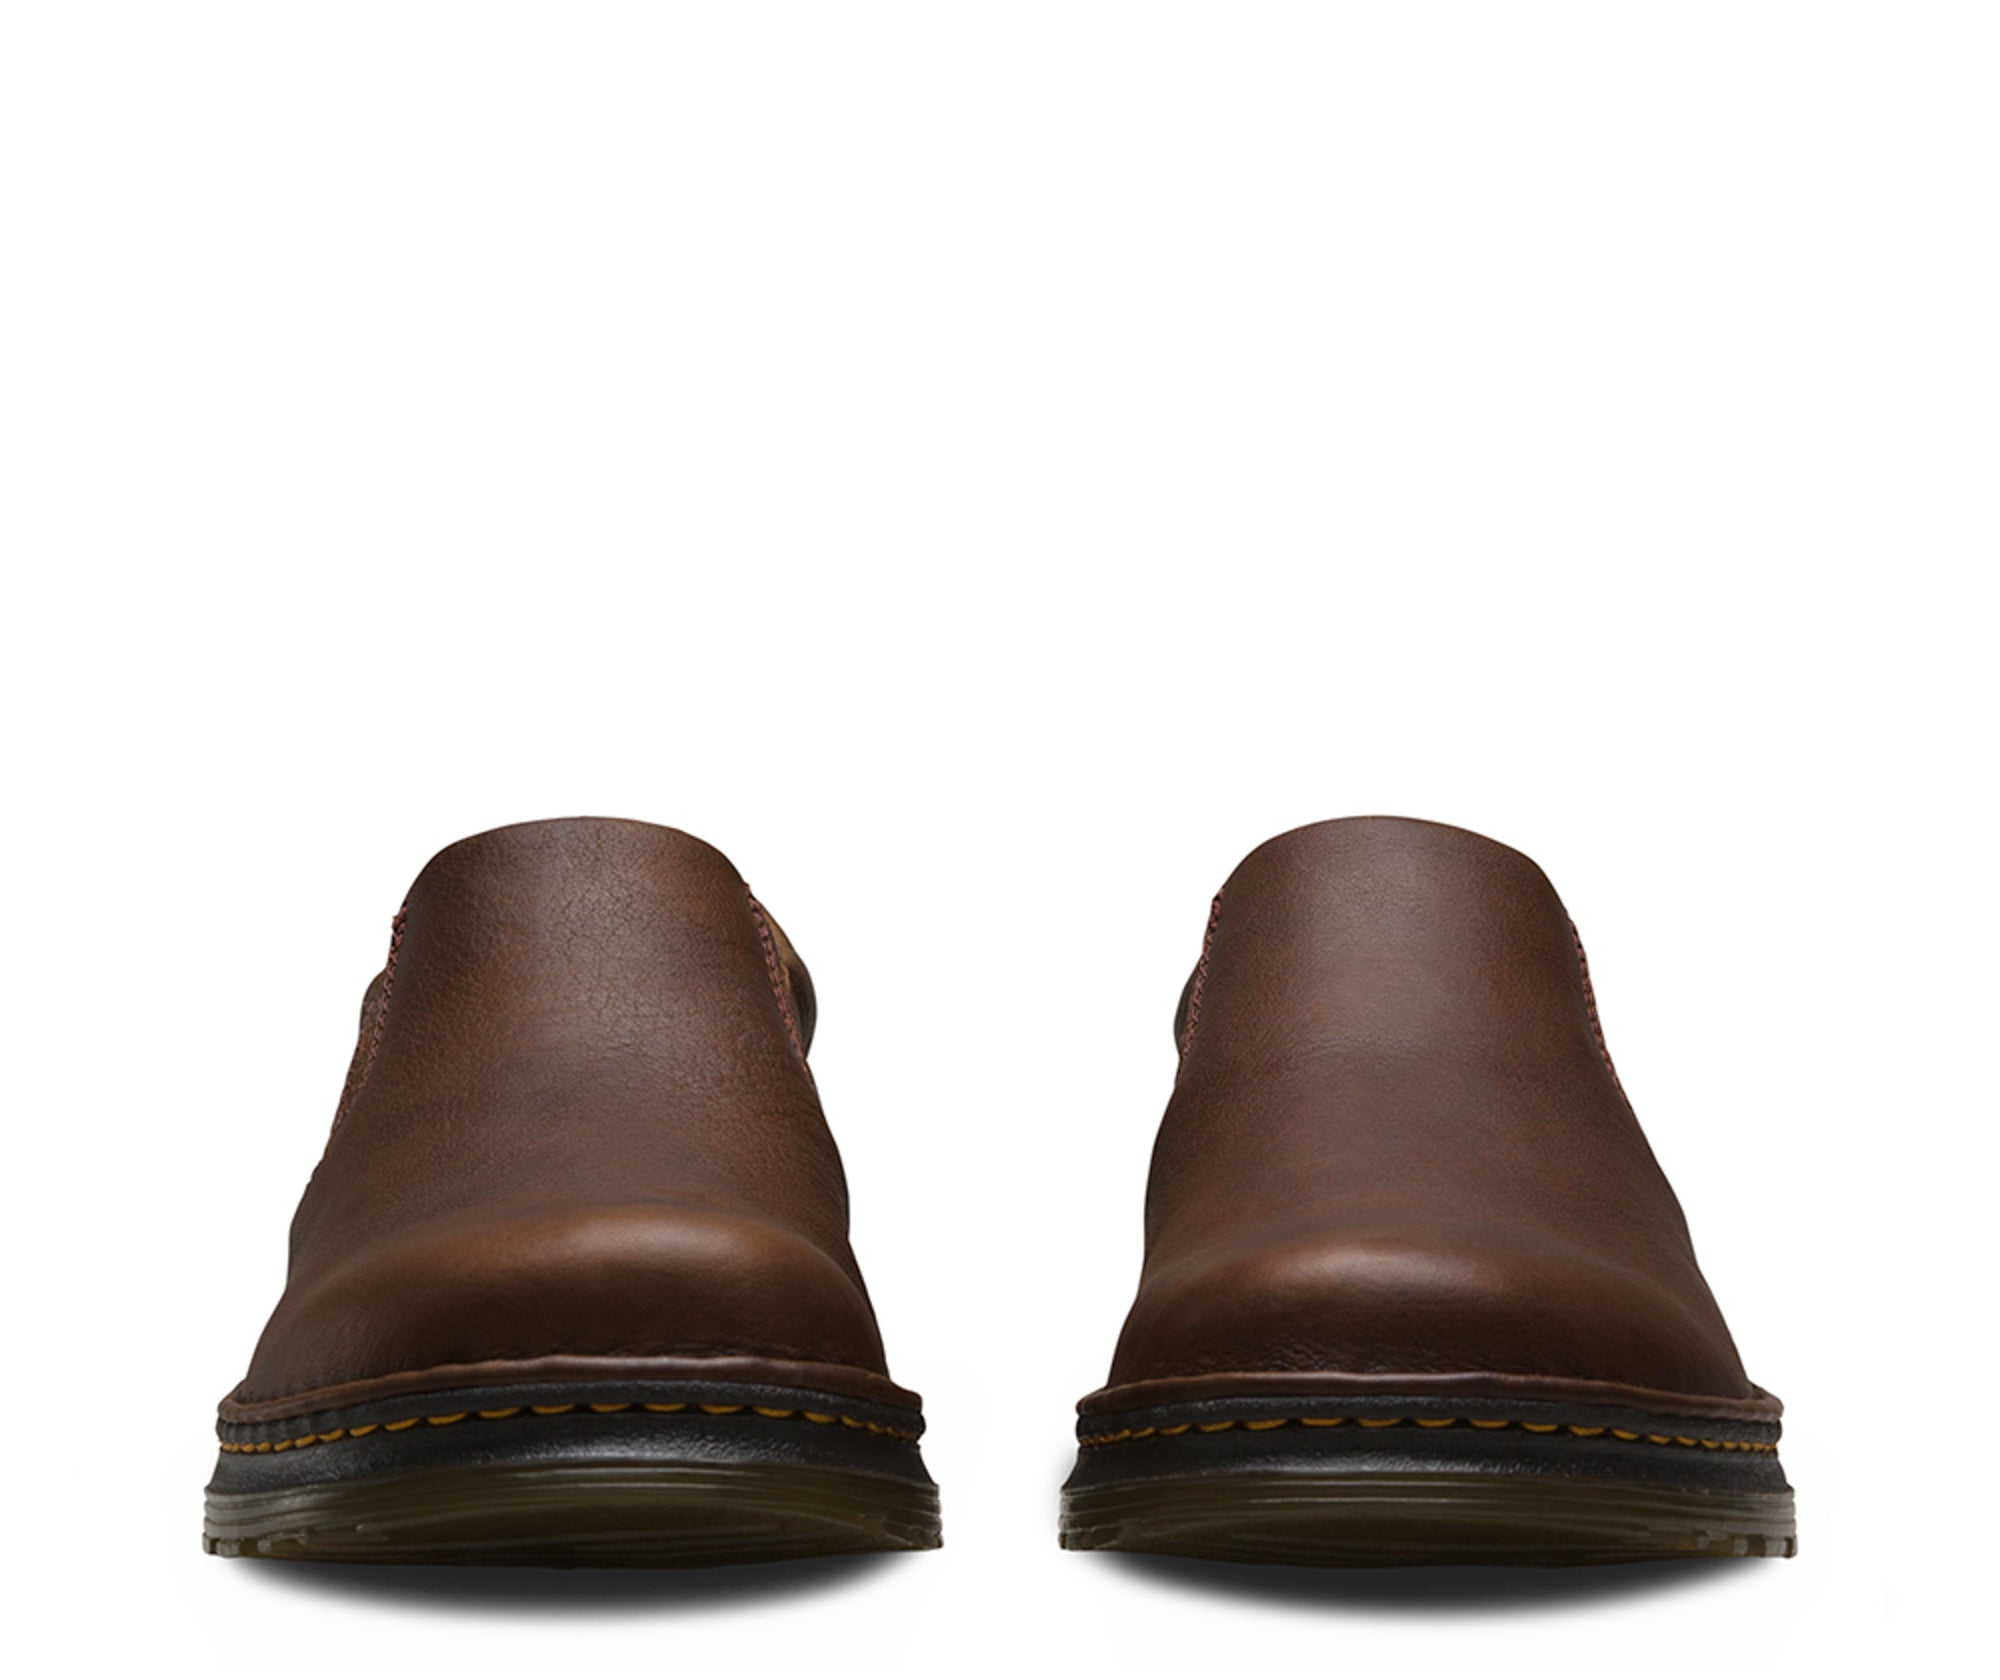 26646813a2d Dr Martens Dark Brown Unisex Boyle Grizzly Leather Work Shoes ...